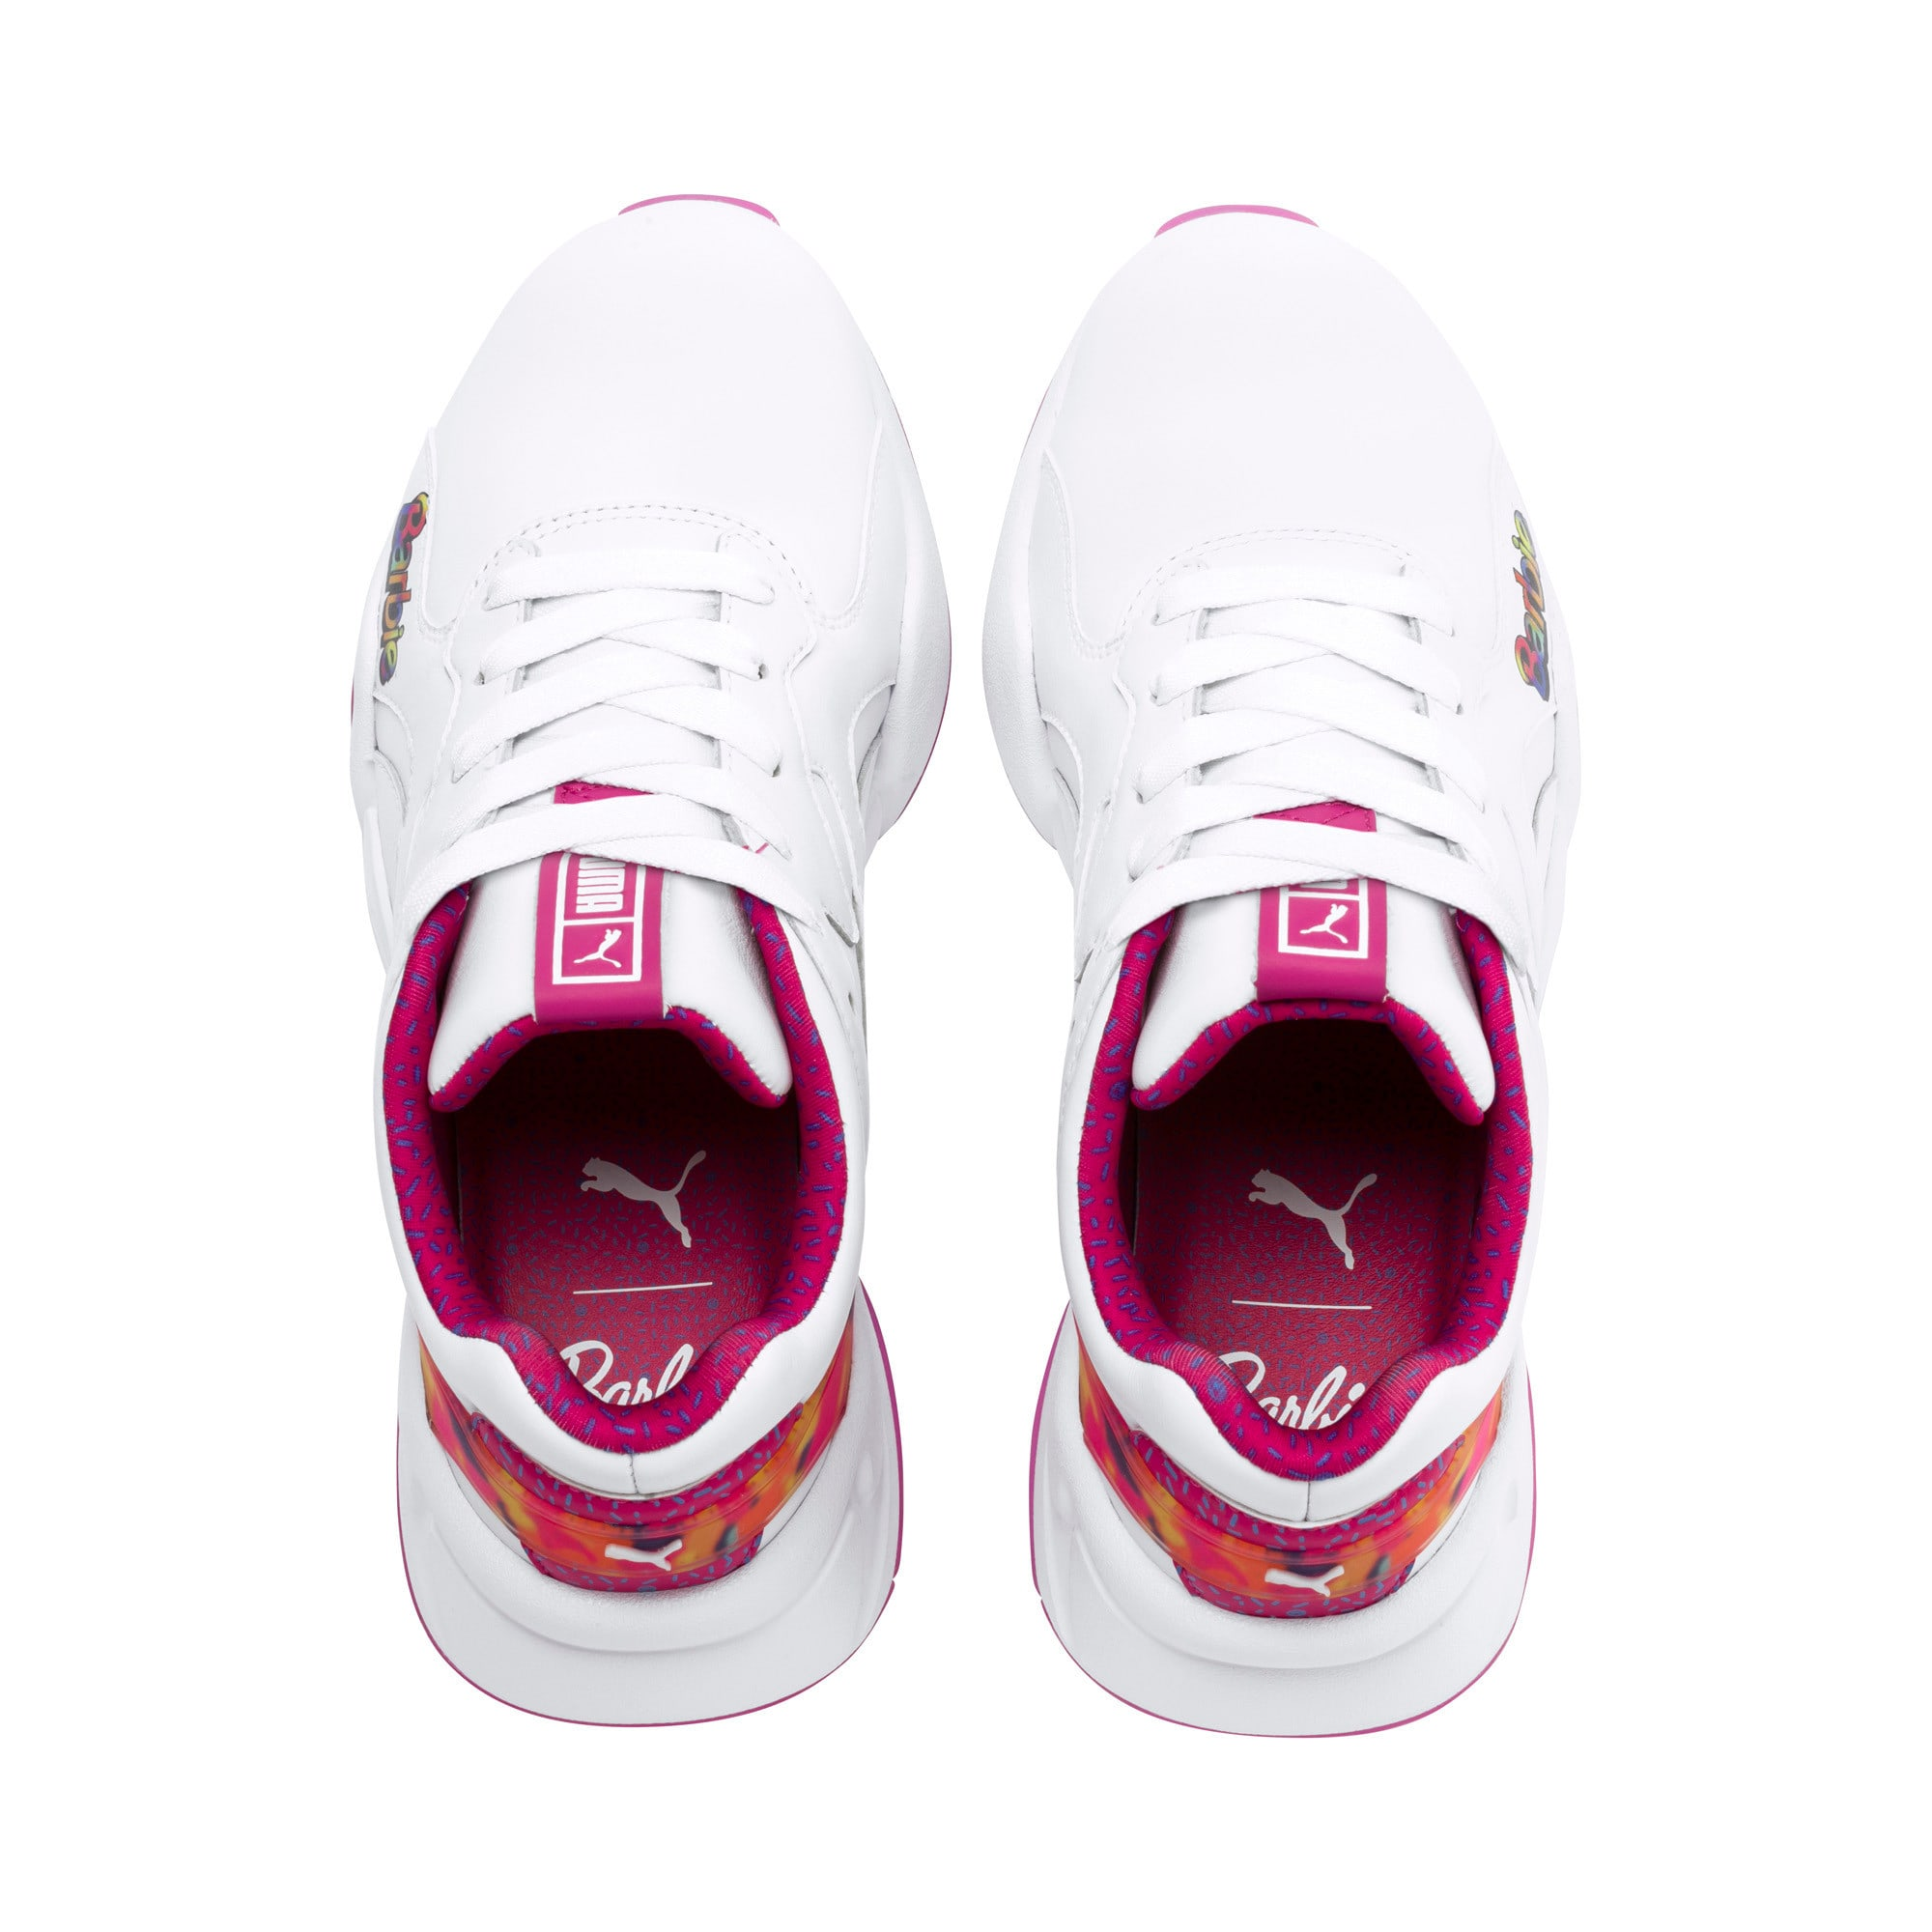 Thumbnail 6 of Nova x Barbie Flash Women's Sneakers, Puma White-CABARET, medium